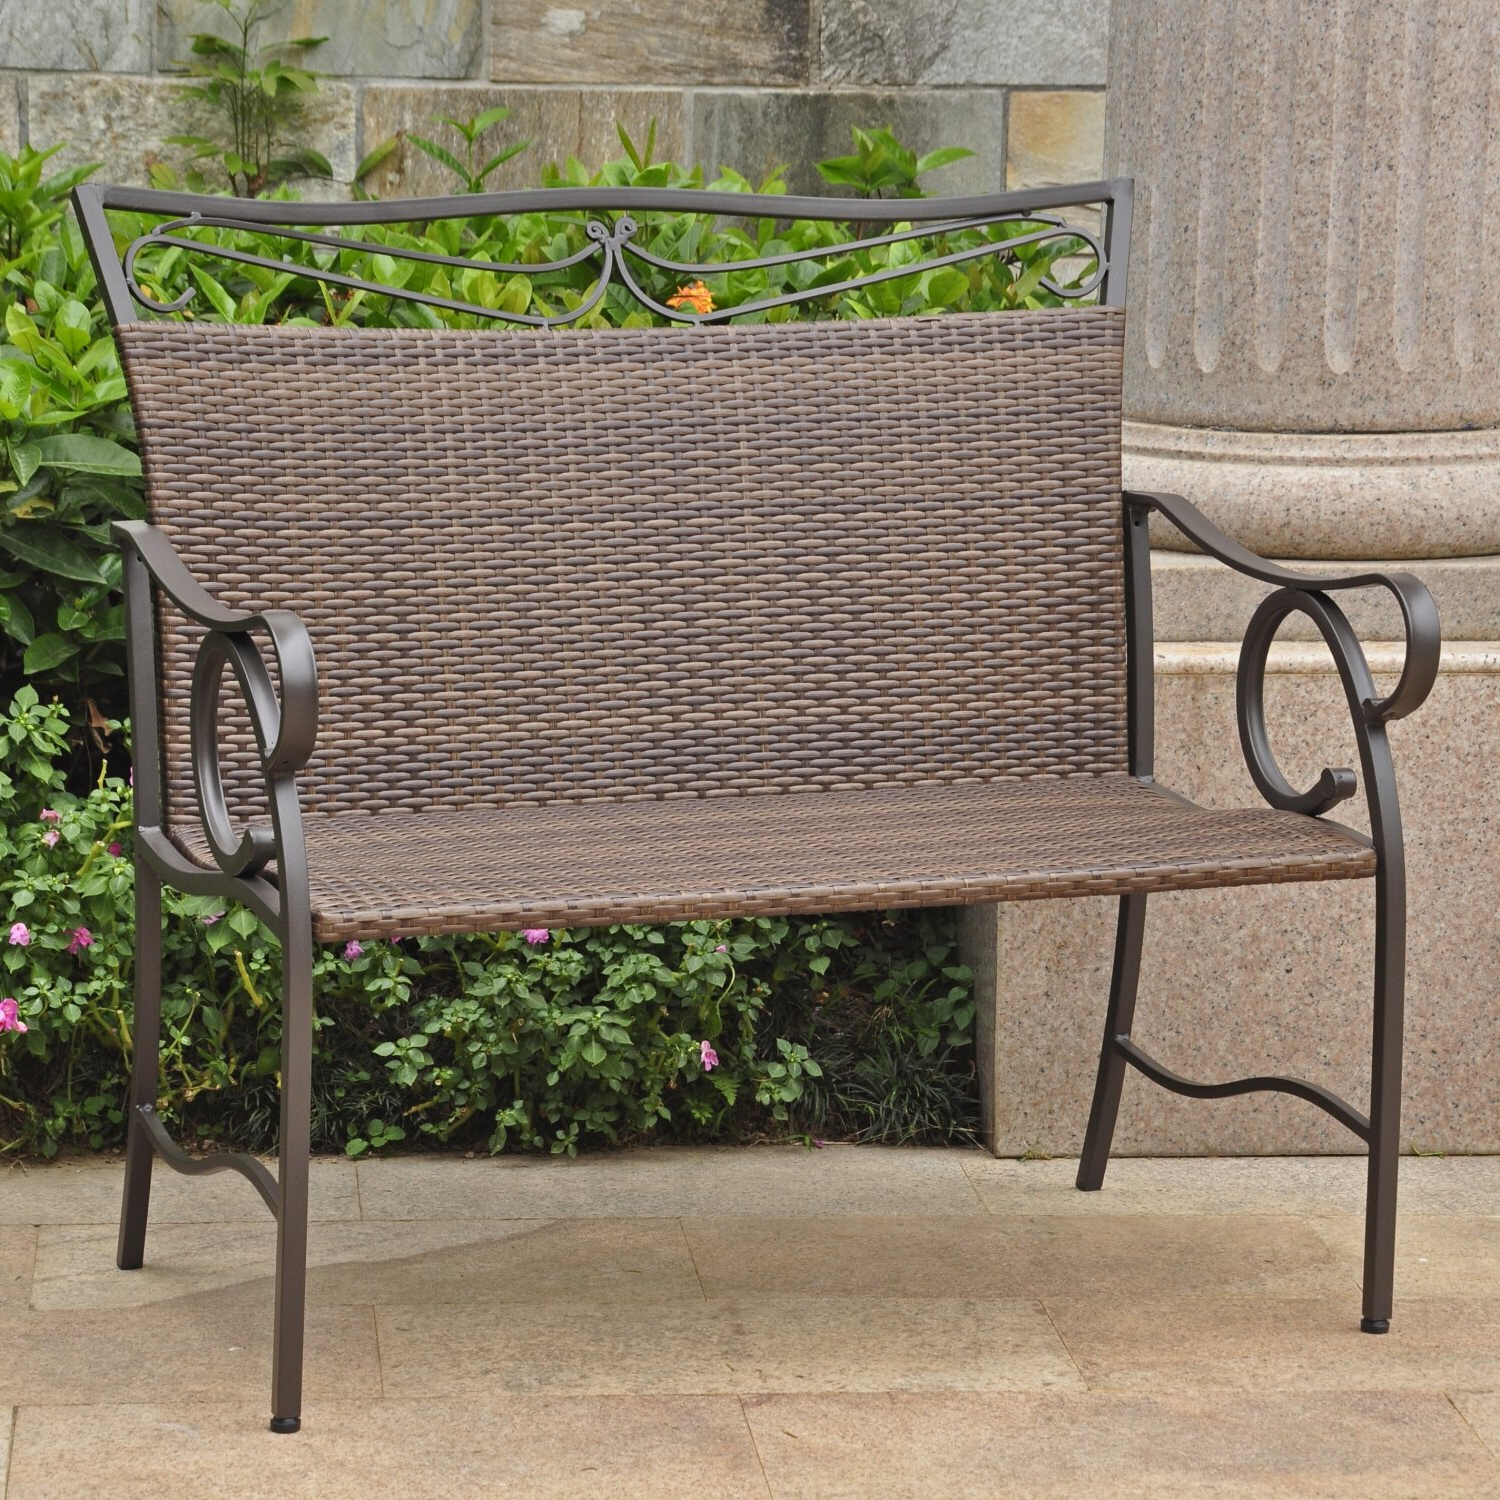 Well Liked Lublin Wicker Tete A Tete Benches With Regard To Stapleton Iron Wicker Resin Garden Bench (View 22 of 30)